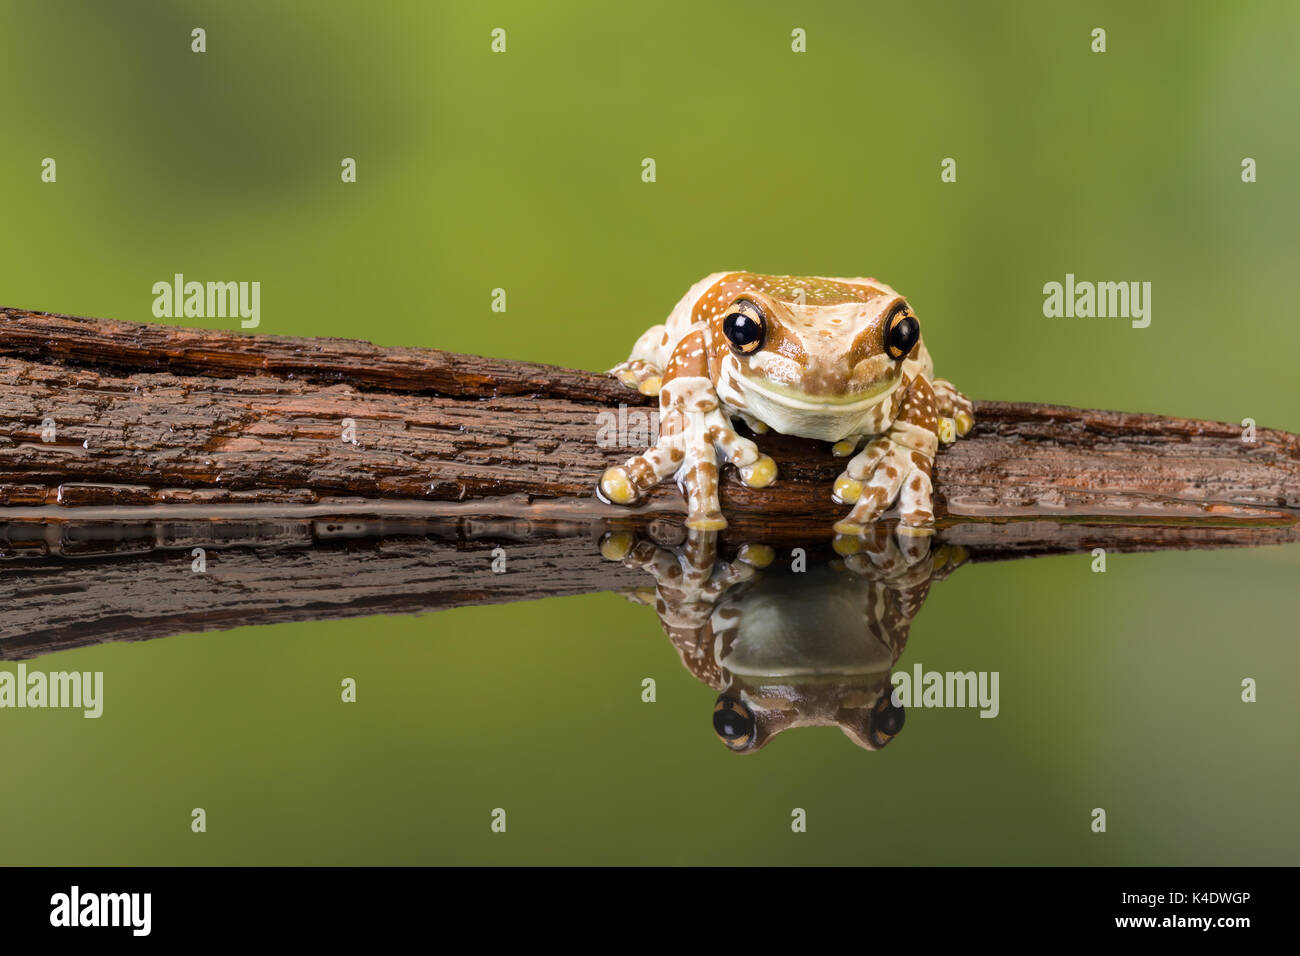 Amazon milk frog Mission Golden-eyed Treefrog Stock Photo, Royalty ...